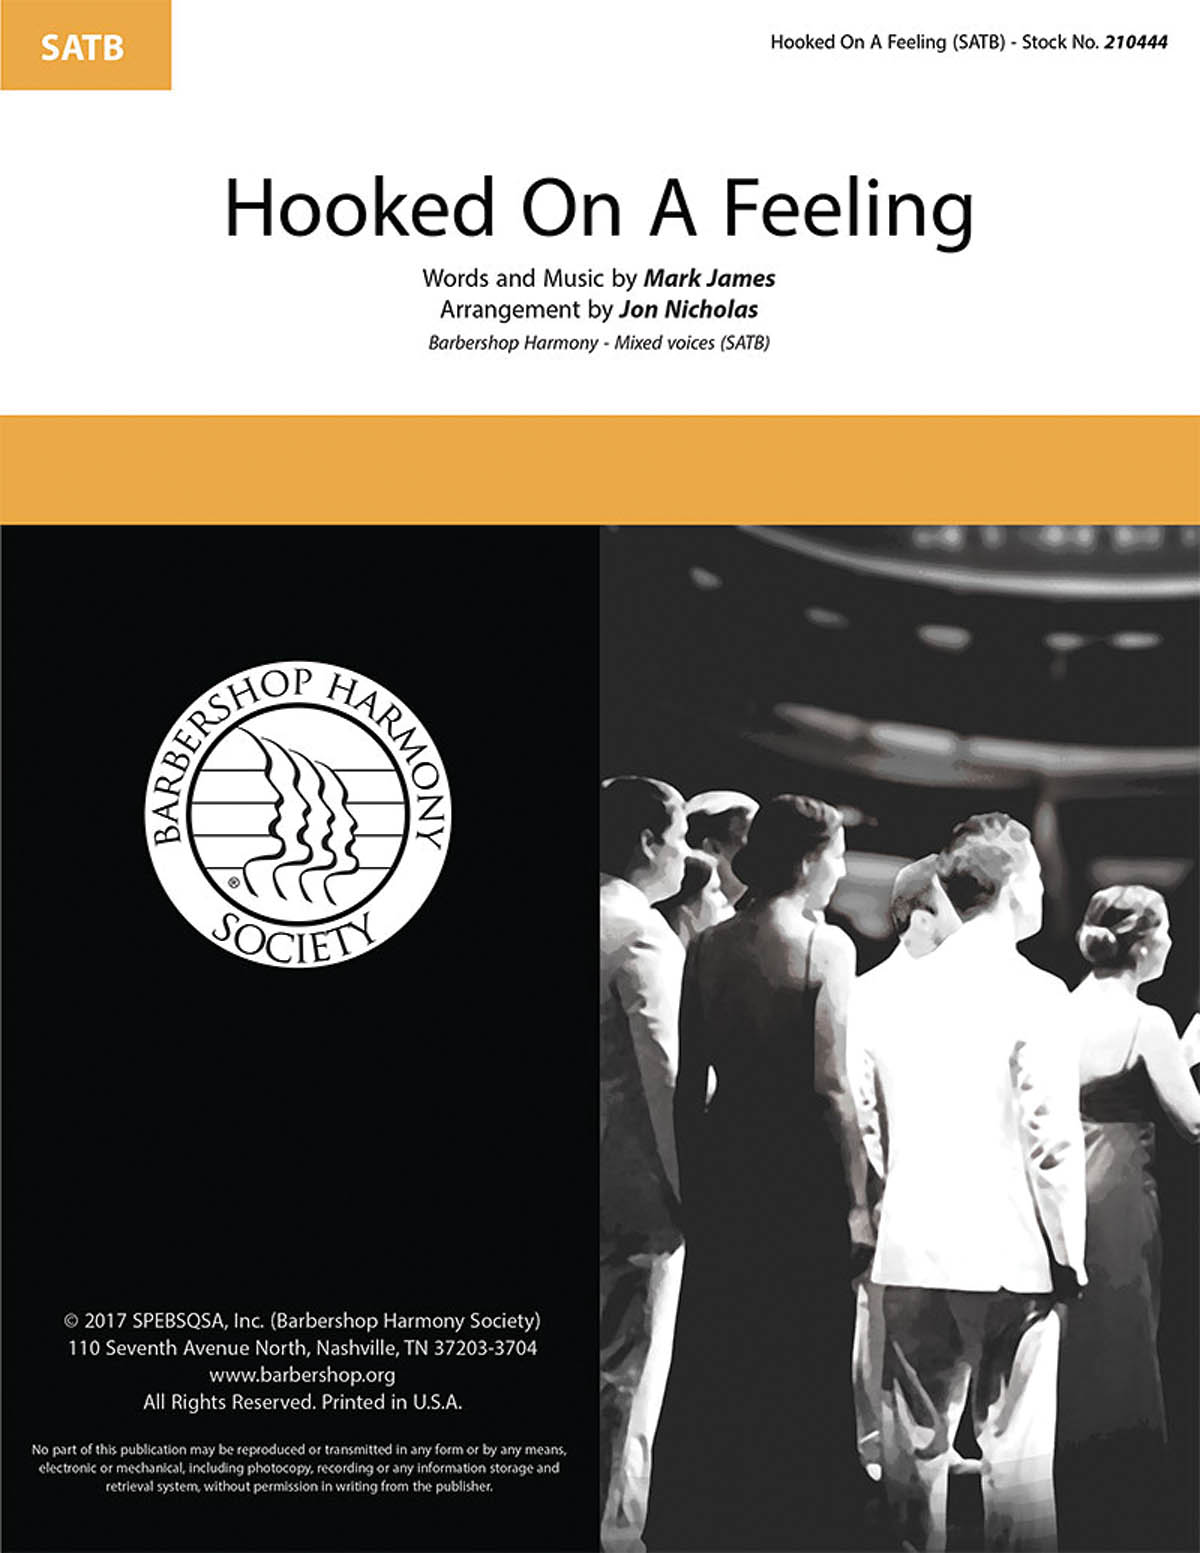 Hooked on a Feeling : SATB : Jon Nicholas : Mark James  : Sheet Music : 00234723 : 812817021396